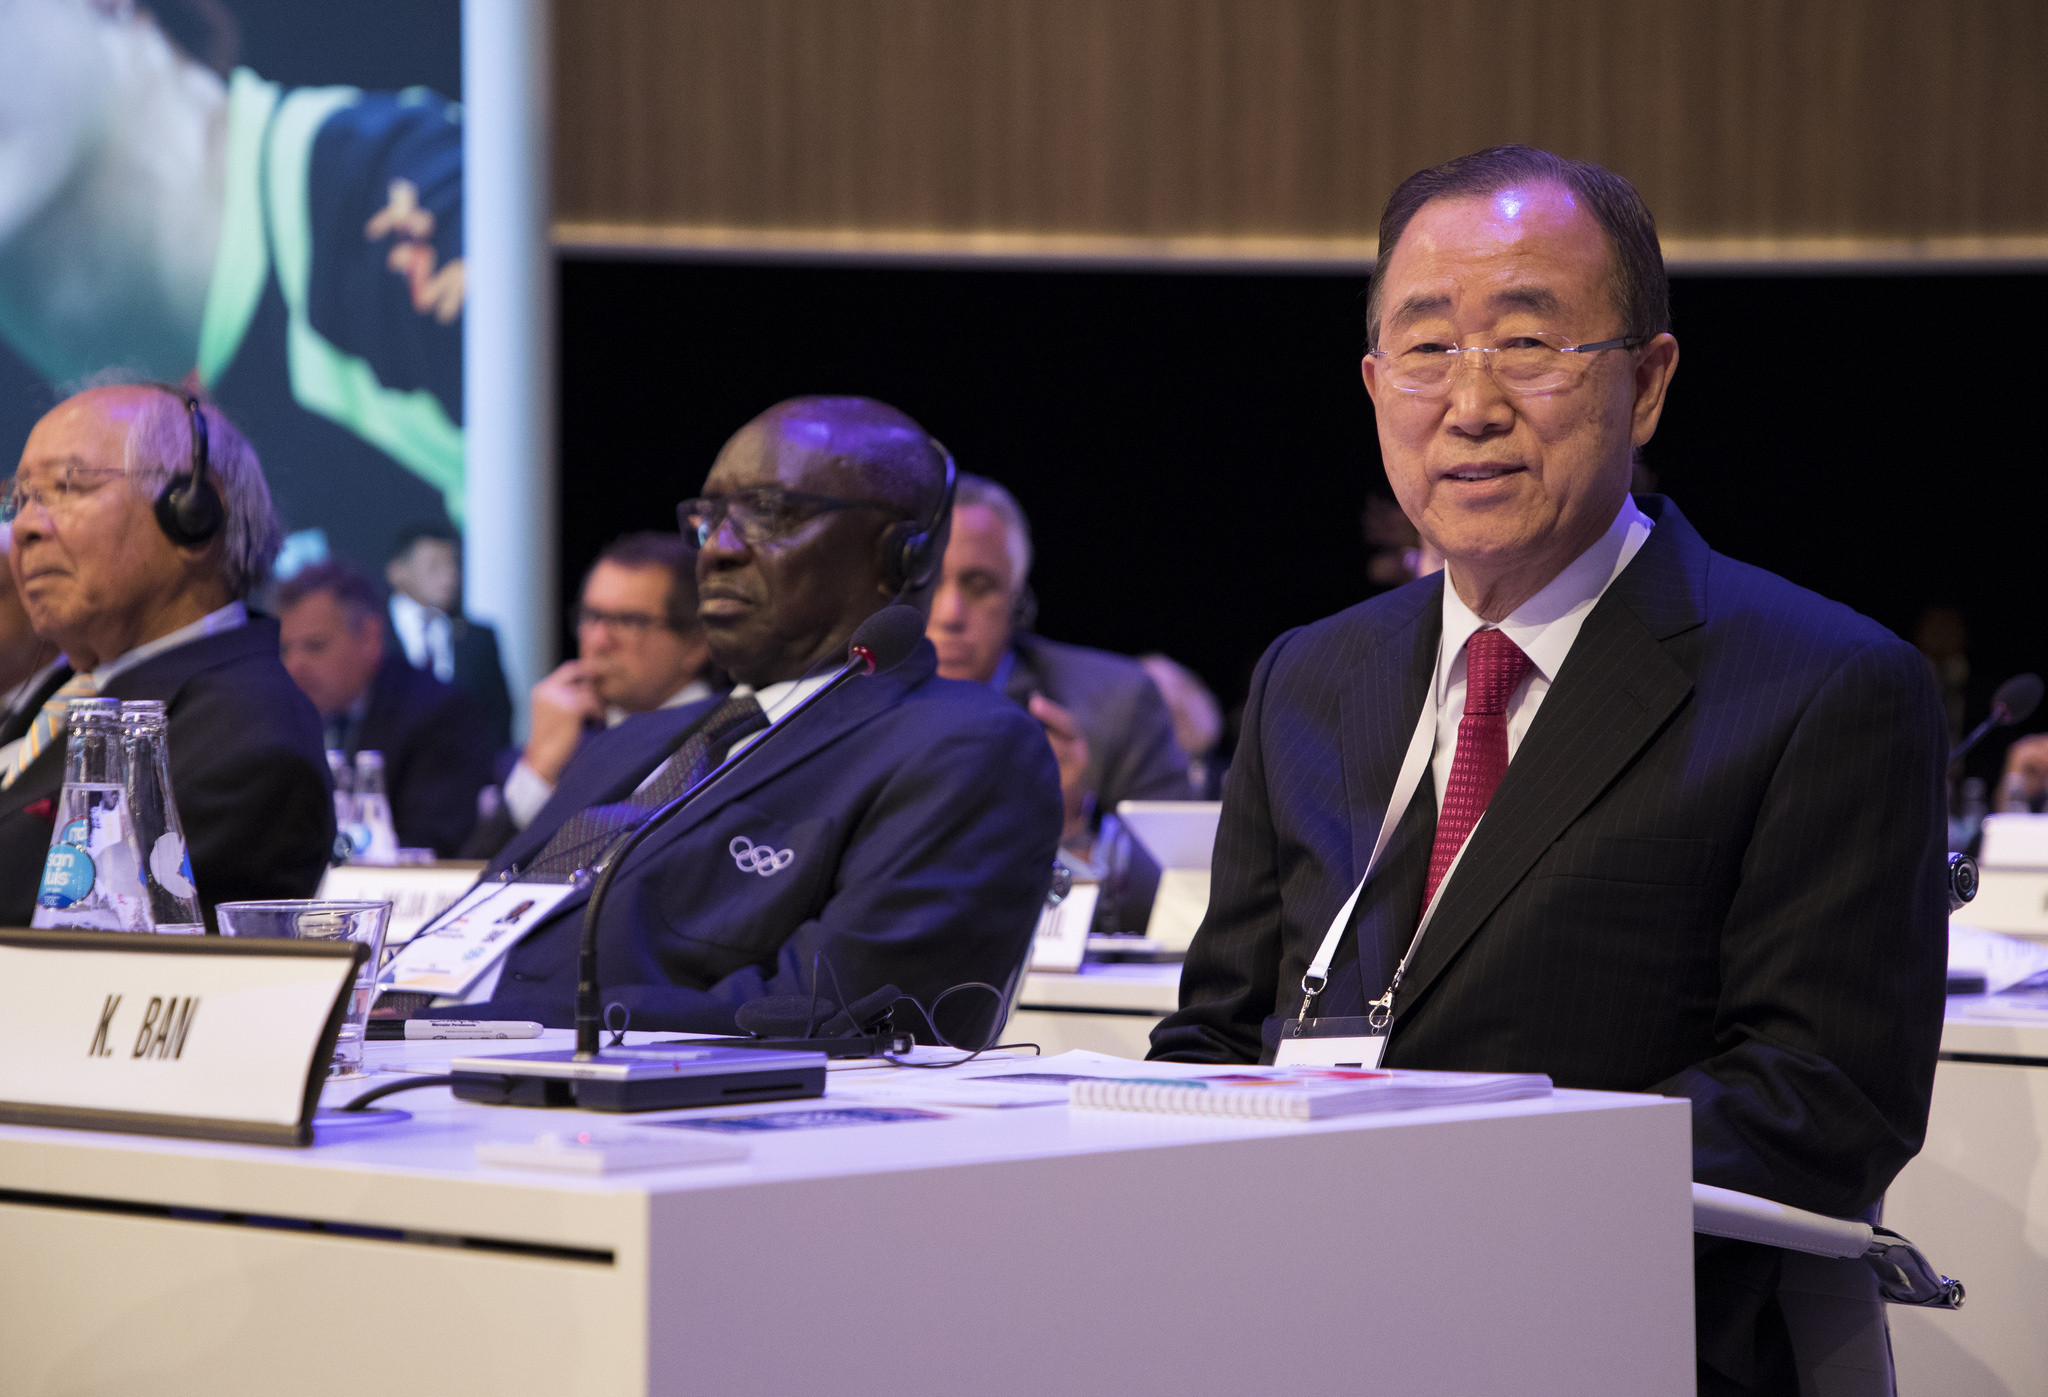 Ban Ki-moon vowed to enhance the accountability and transparency of the IOC following his election ©IOC